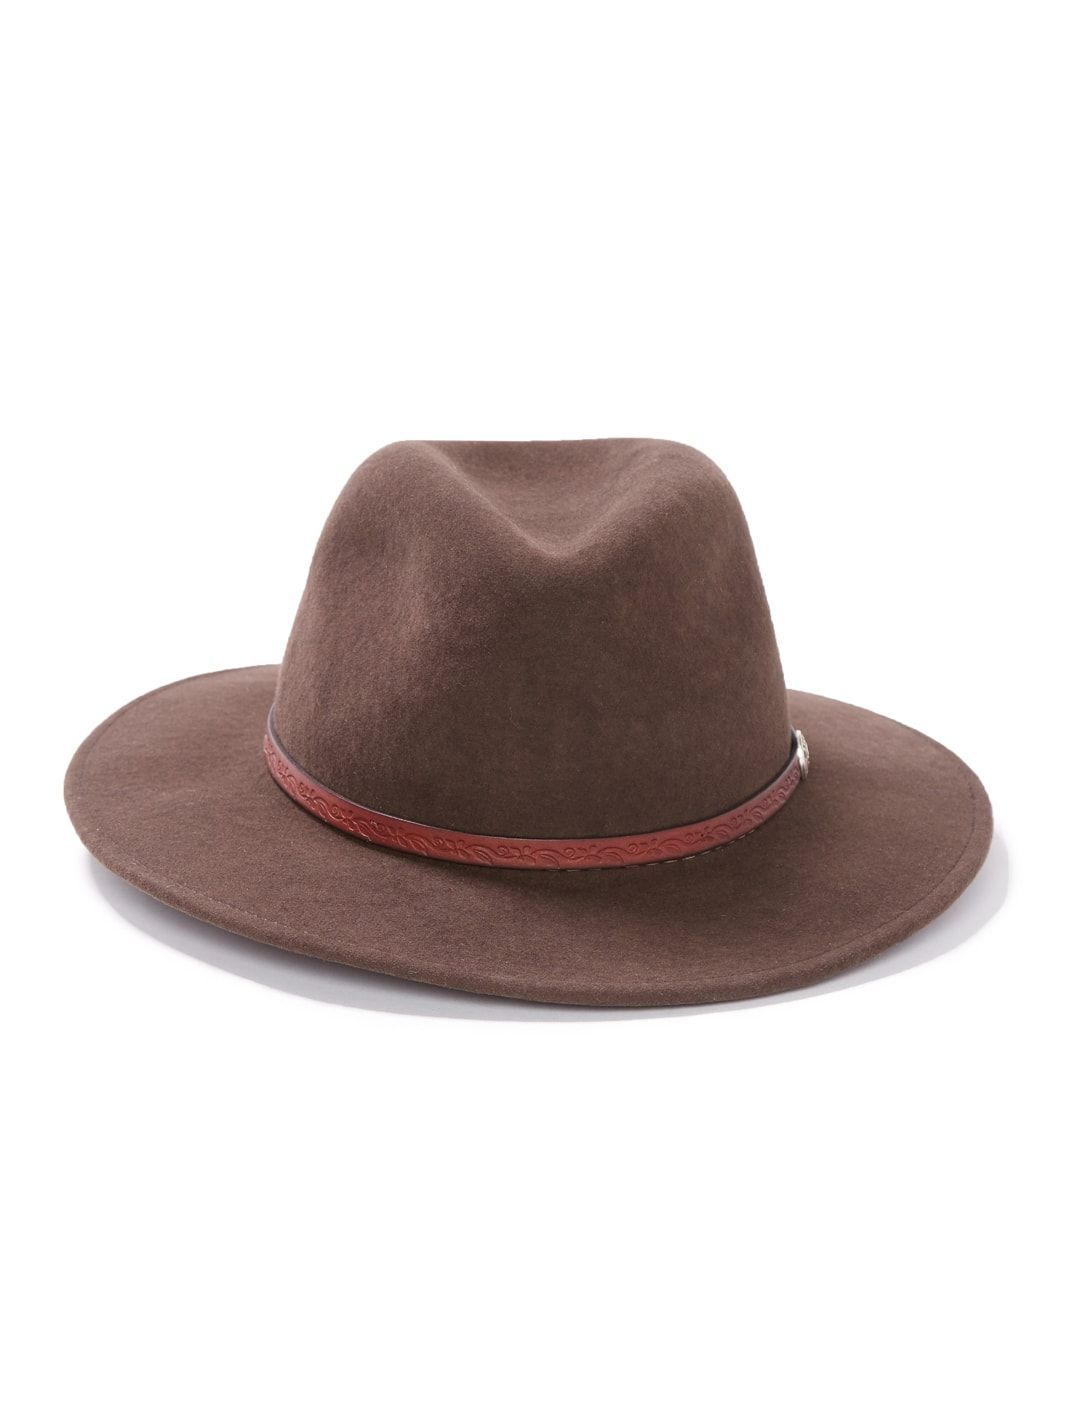 Stetson Cromwell Outdoor Hat  049b2666540